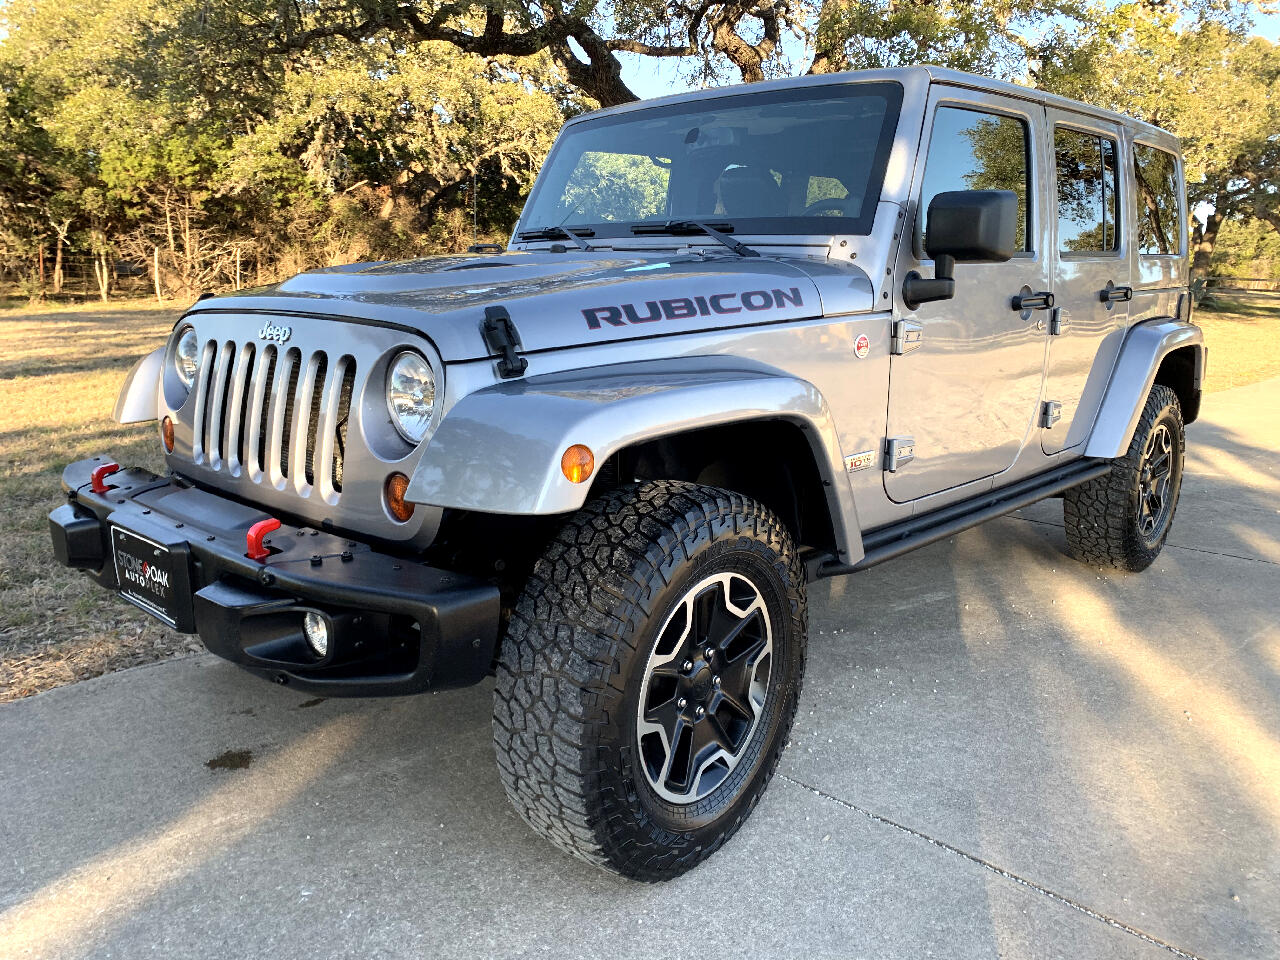 2013 Jeep Wrangler Unlimited 4WD 4dr Rubicon 10th Anniversary